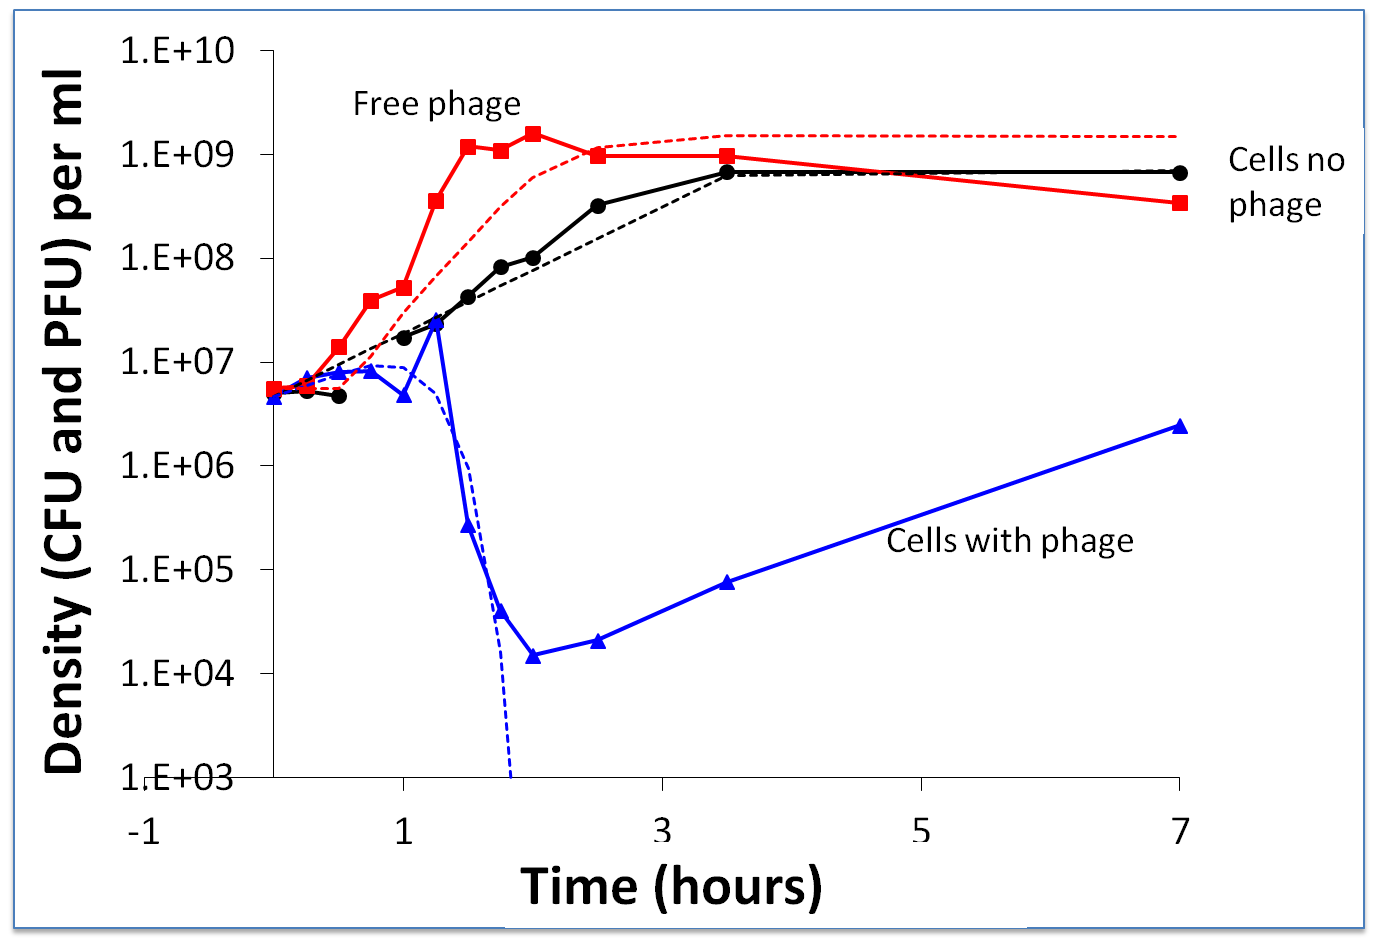 Short-term bacterial and phage growth dynamics in the absence of immunity: change in the density of WT bacteria and WT phage.